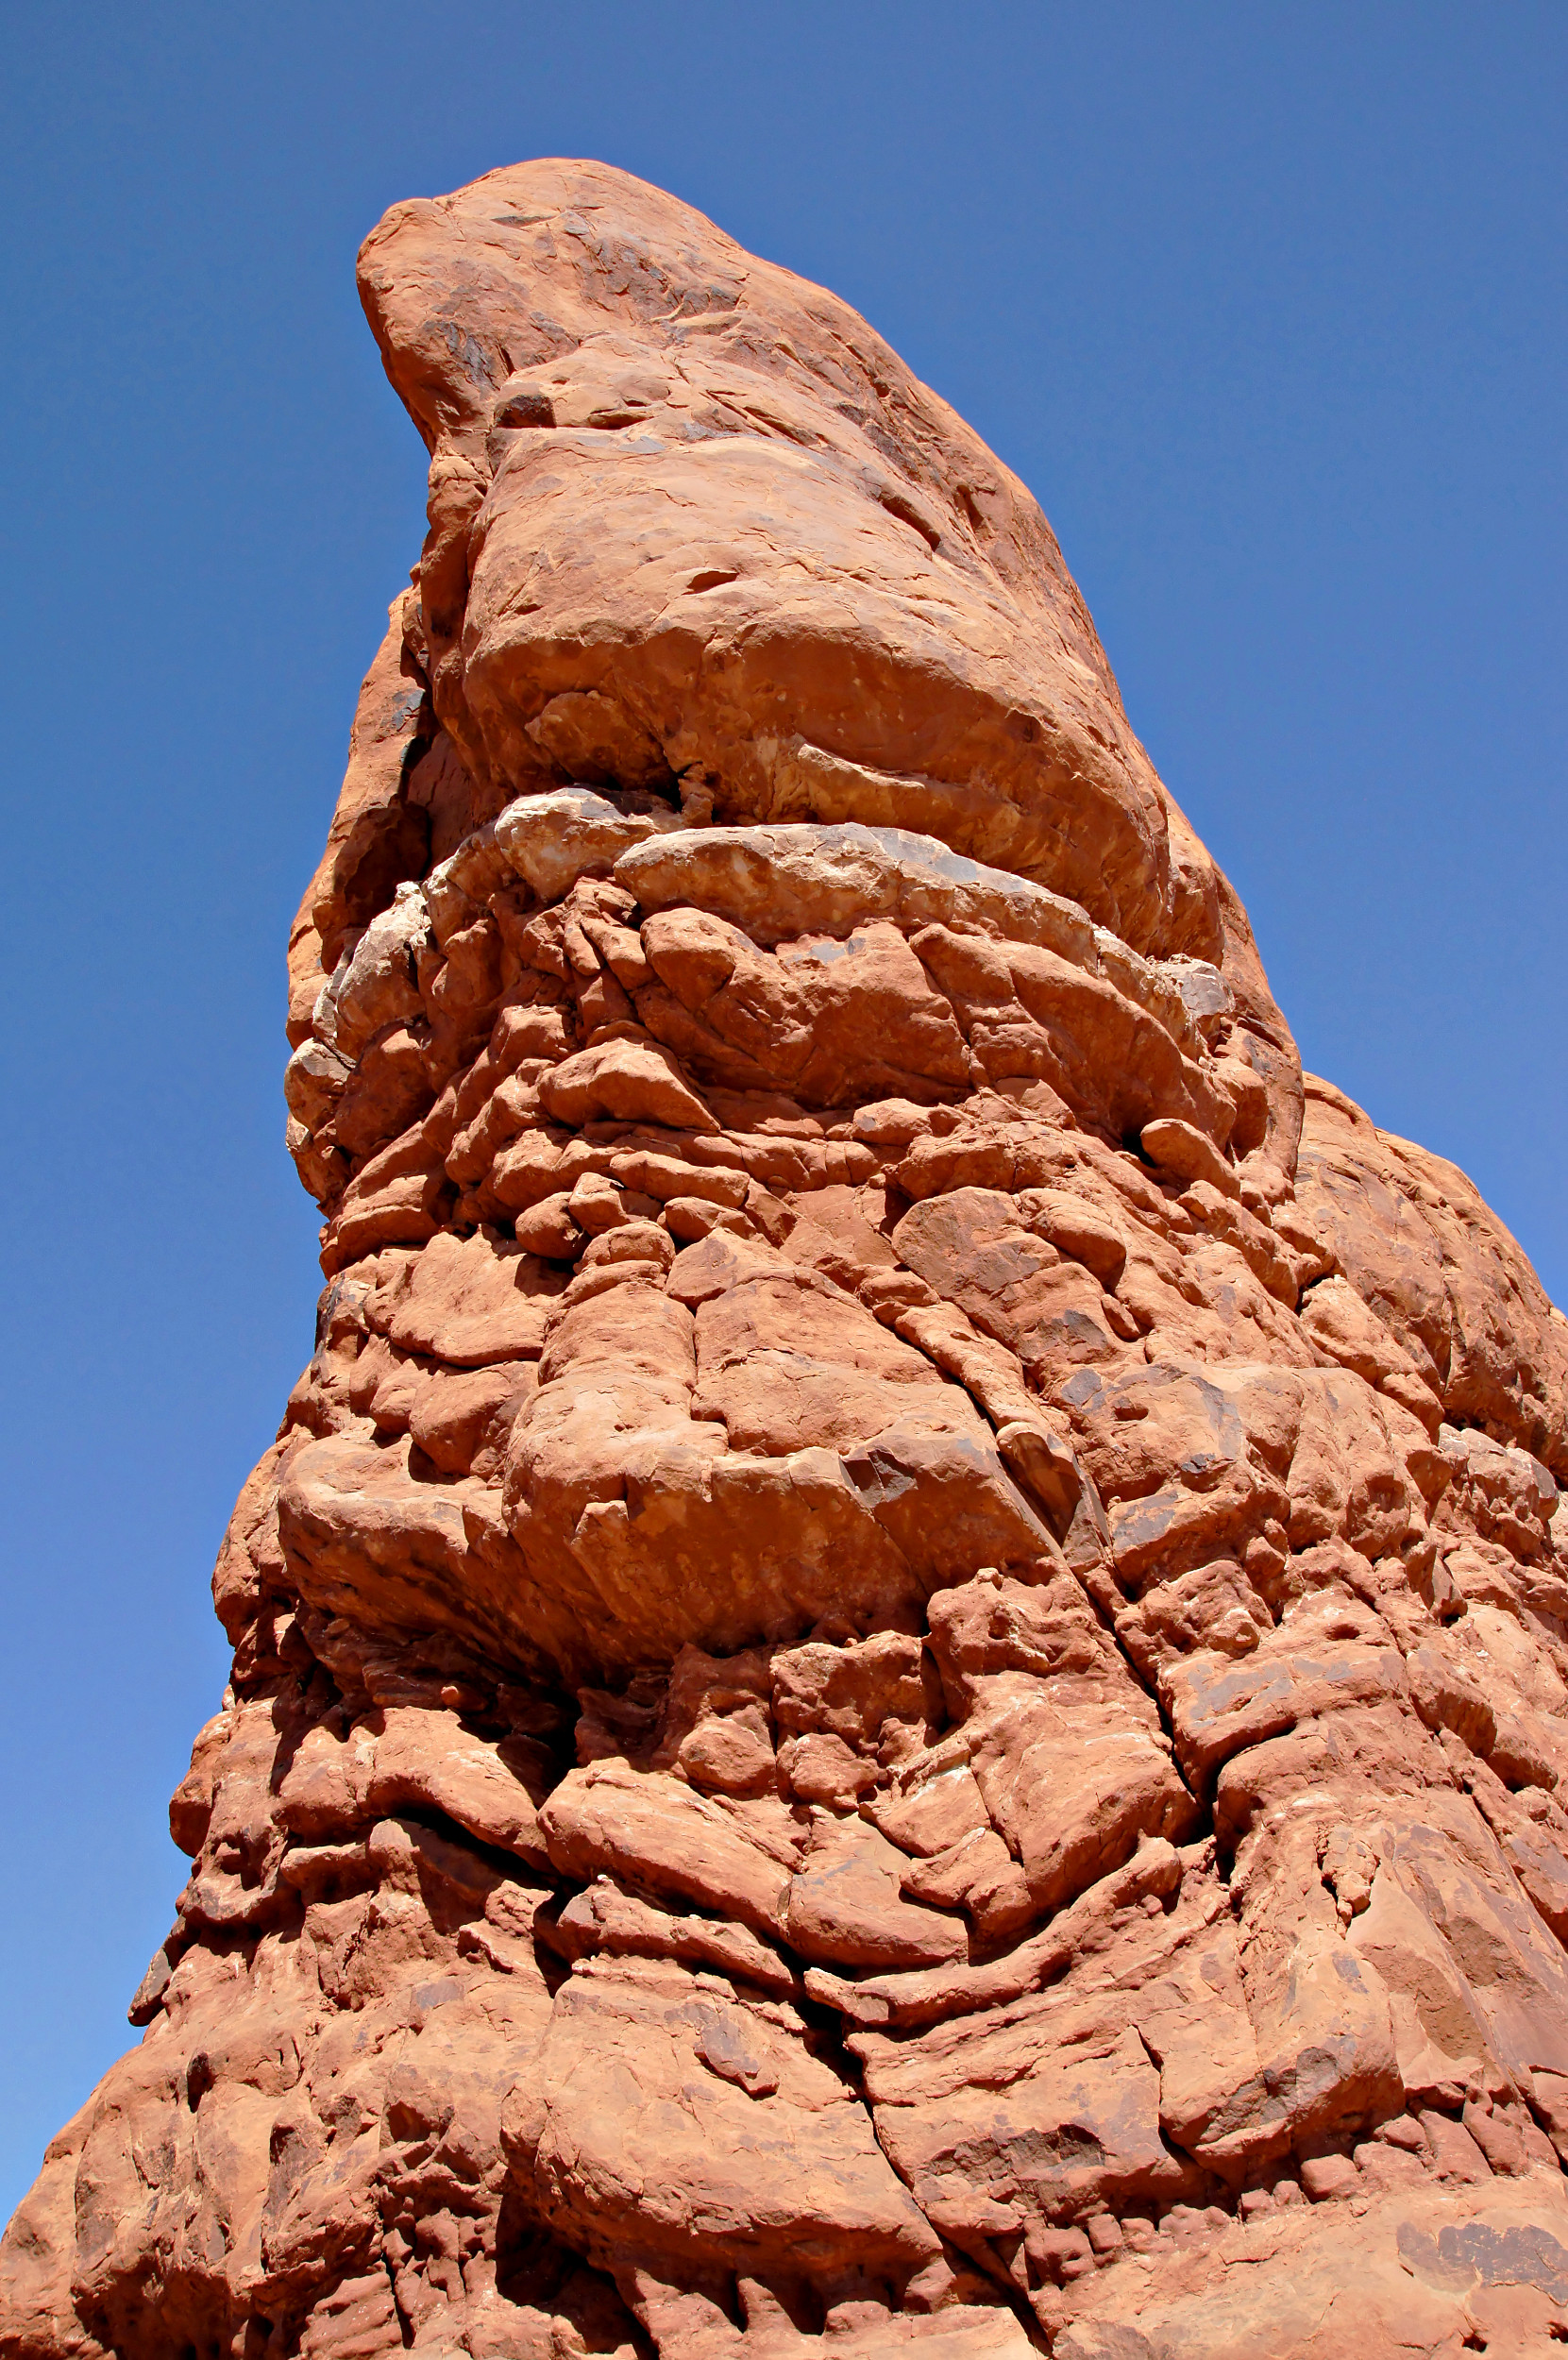 Free Stock Photo 12225 Garden Of Eden Rock Formation At Arches National Park Freeimageslive